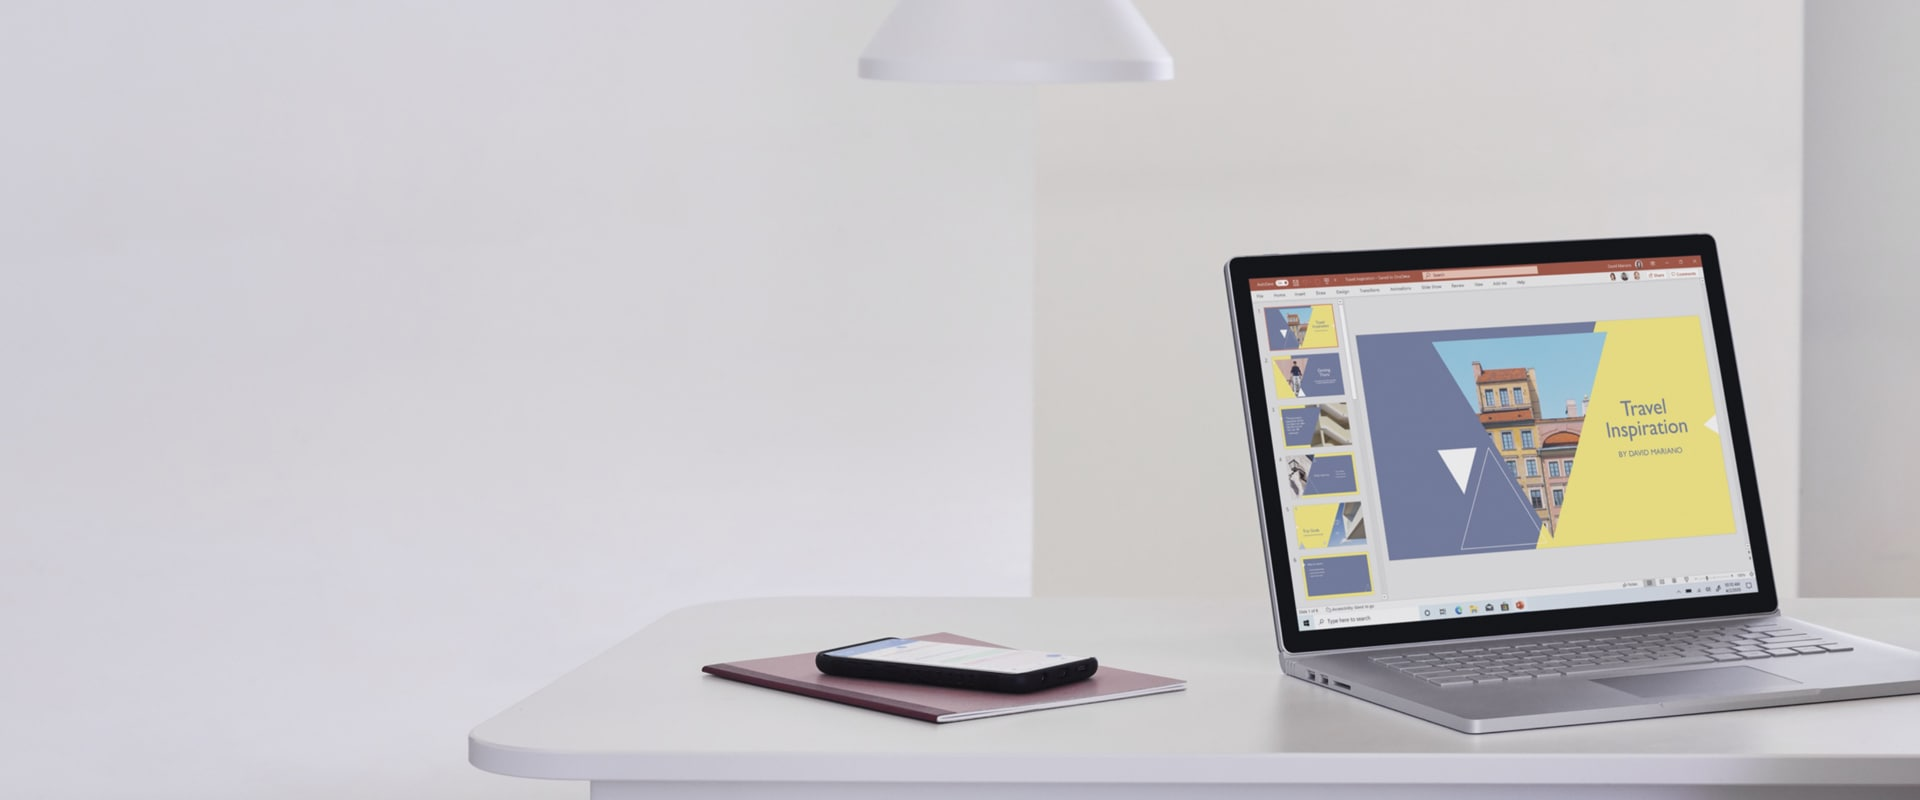 A laptop sits on a desk next to a notebook and phone. A PowerPoint file open on the laptop screen